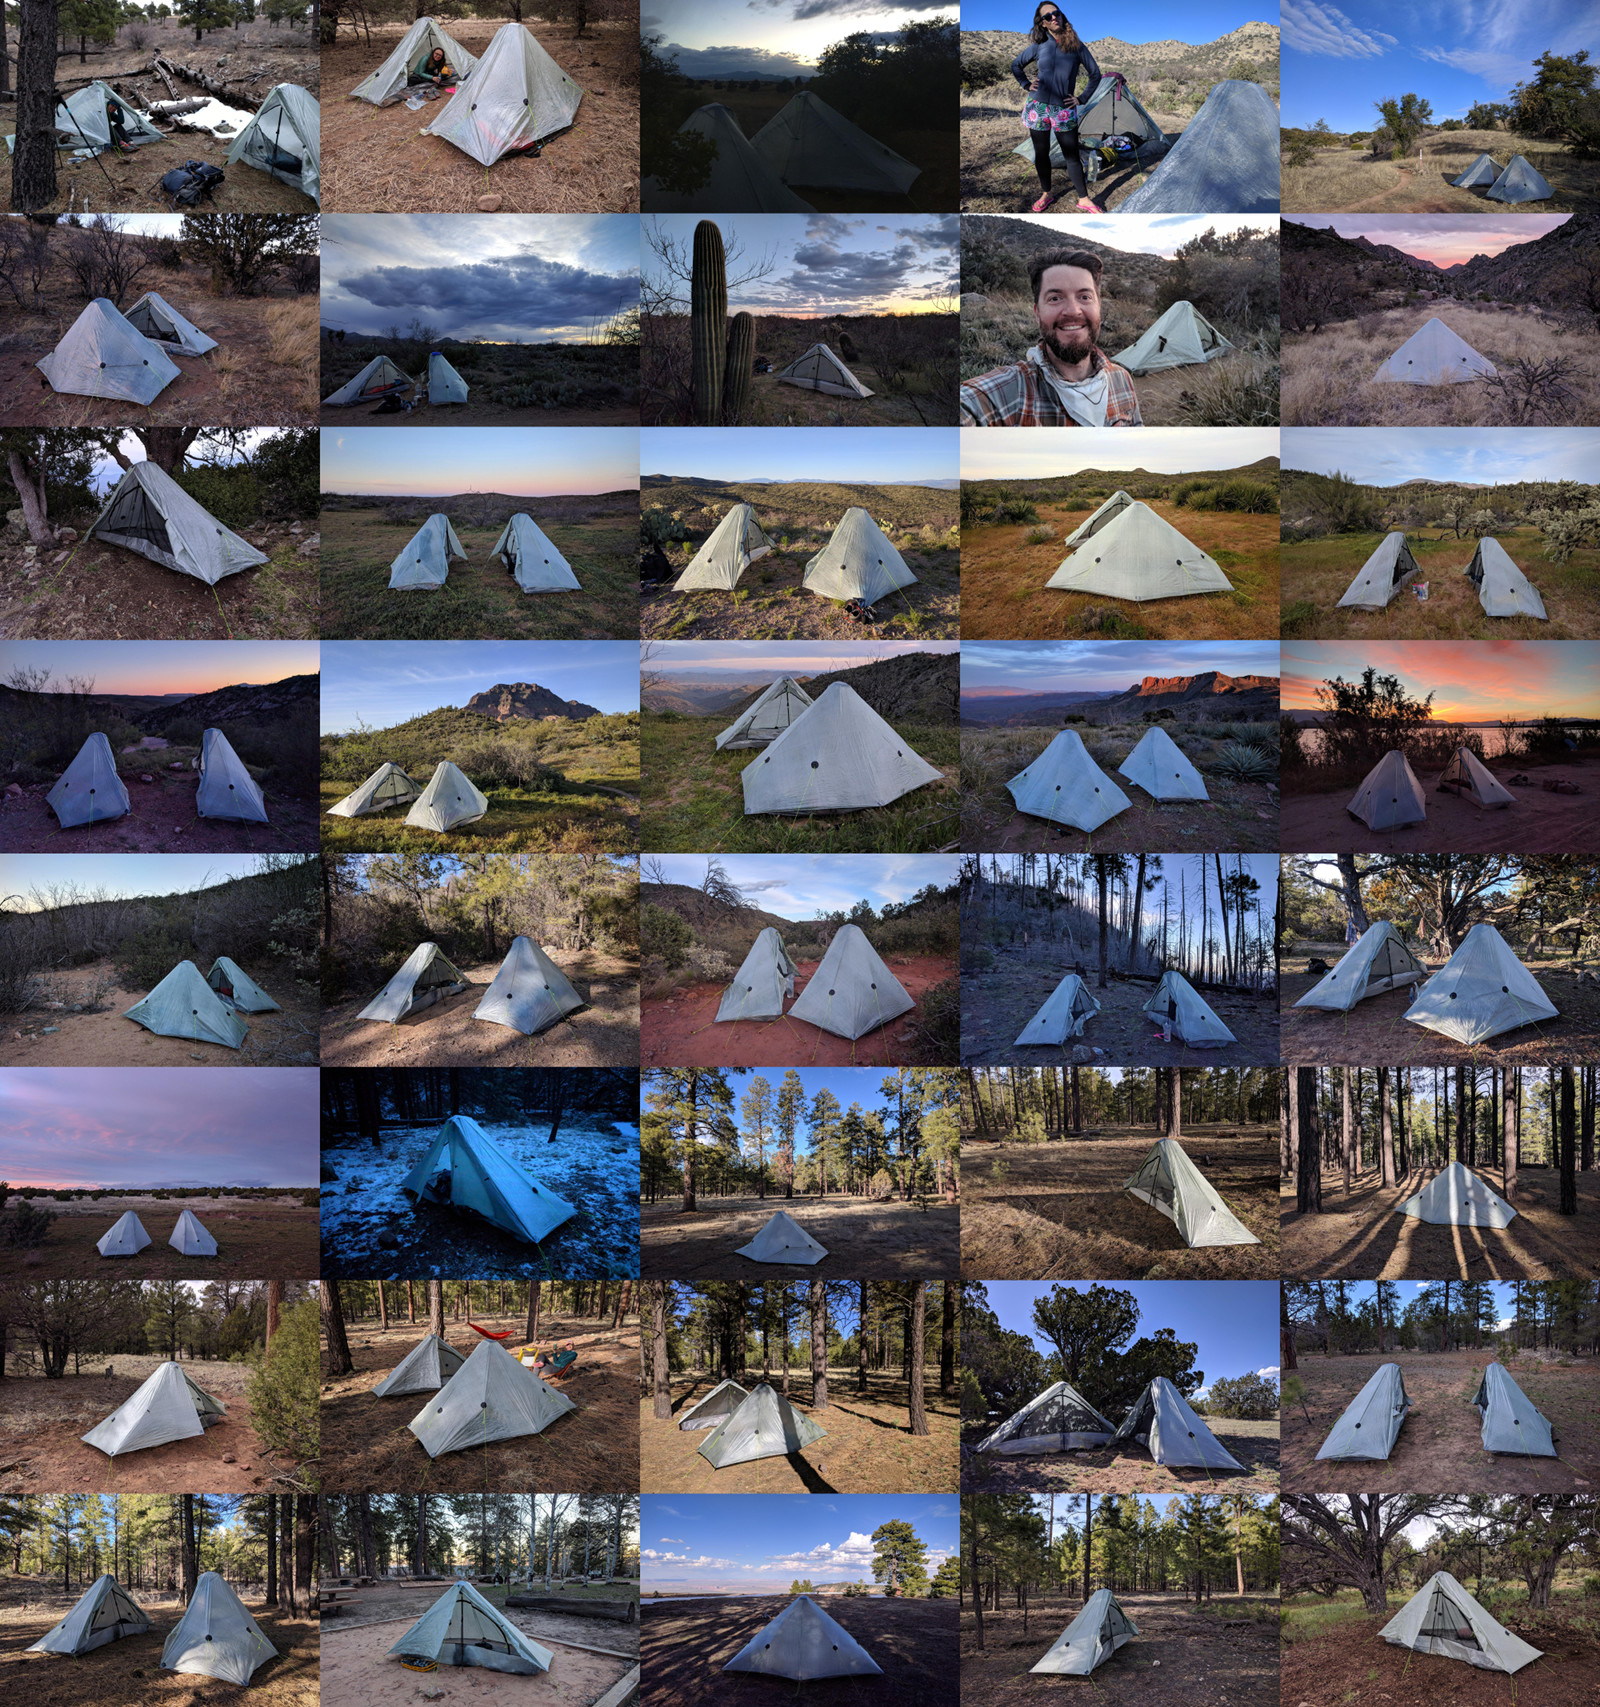 All 40 campsites from my 2019 thru-hike of the Arizona national Scenic Trail